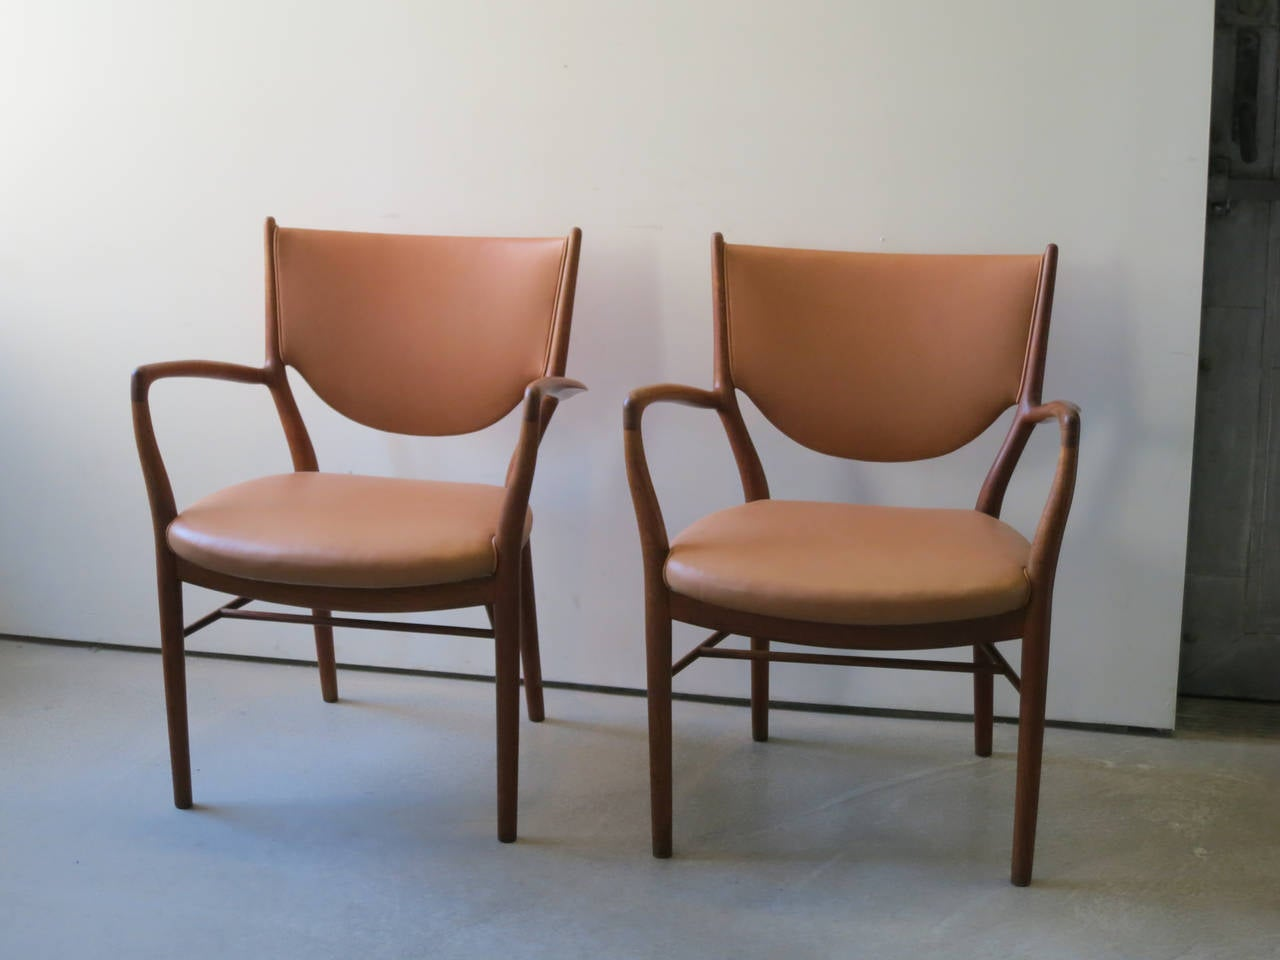 Pair of NV46 Chairs by Finn Juhl in Teak with Natural Leather Upholstery For Sale 1